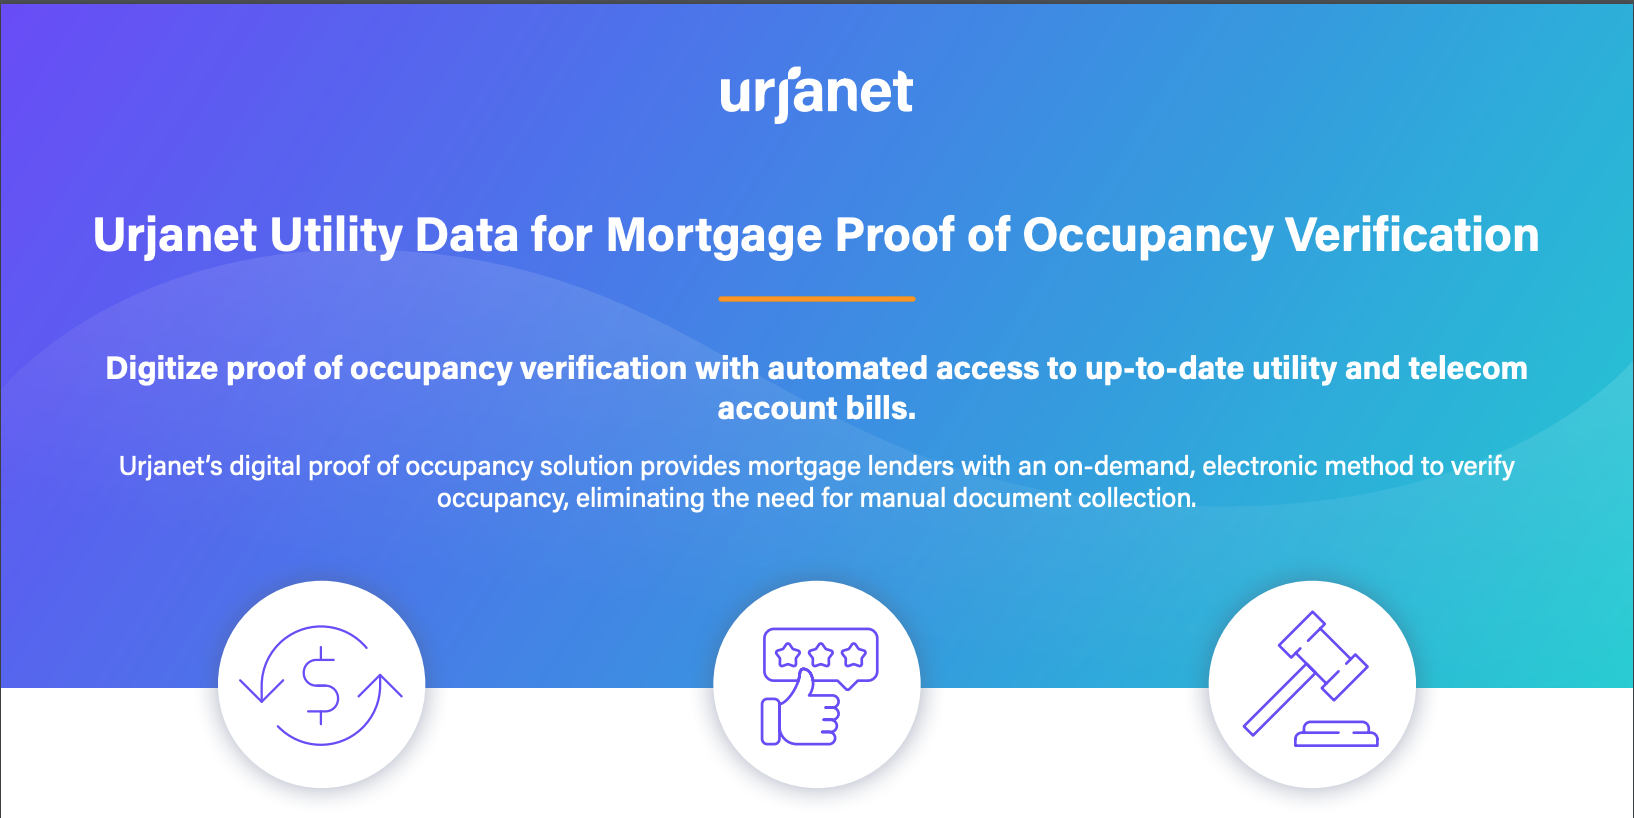 Urjanet Utility Data for Mortgage Proof of Occupancy Verification